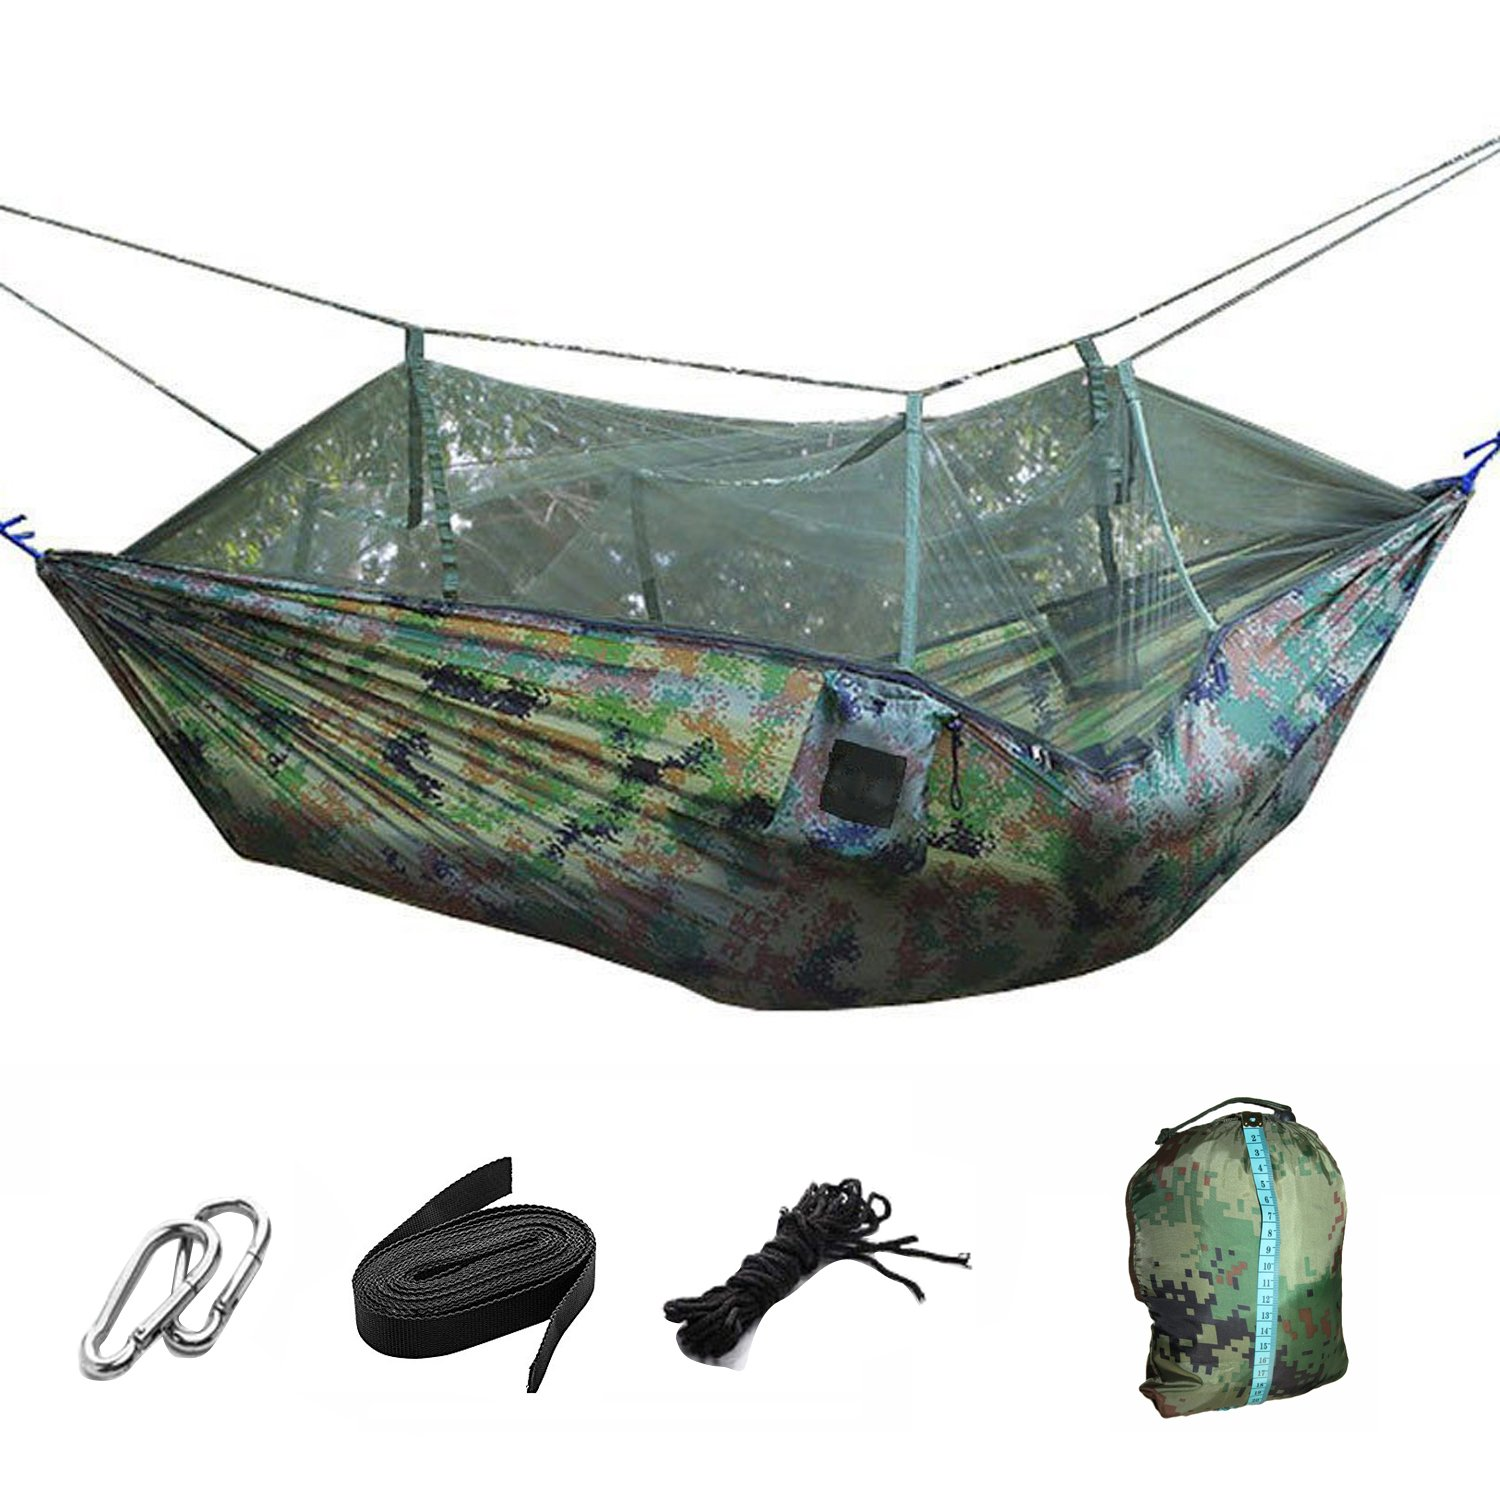 Suyi Portable Folding Double Parachute Camping Hammock Mosquito Net Tree Hammocks Tent Travel Bed,Premium Quality Lightweight & Durable 210T Nylon Fabric,Capacity up to 441 lbs,with Strong Tree Straps,Hooks,Storage Bag,Perfect for Outdoor Camping,Hiki